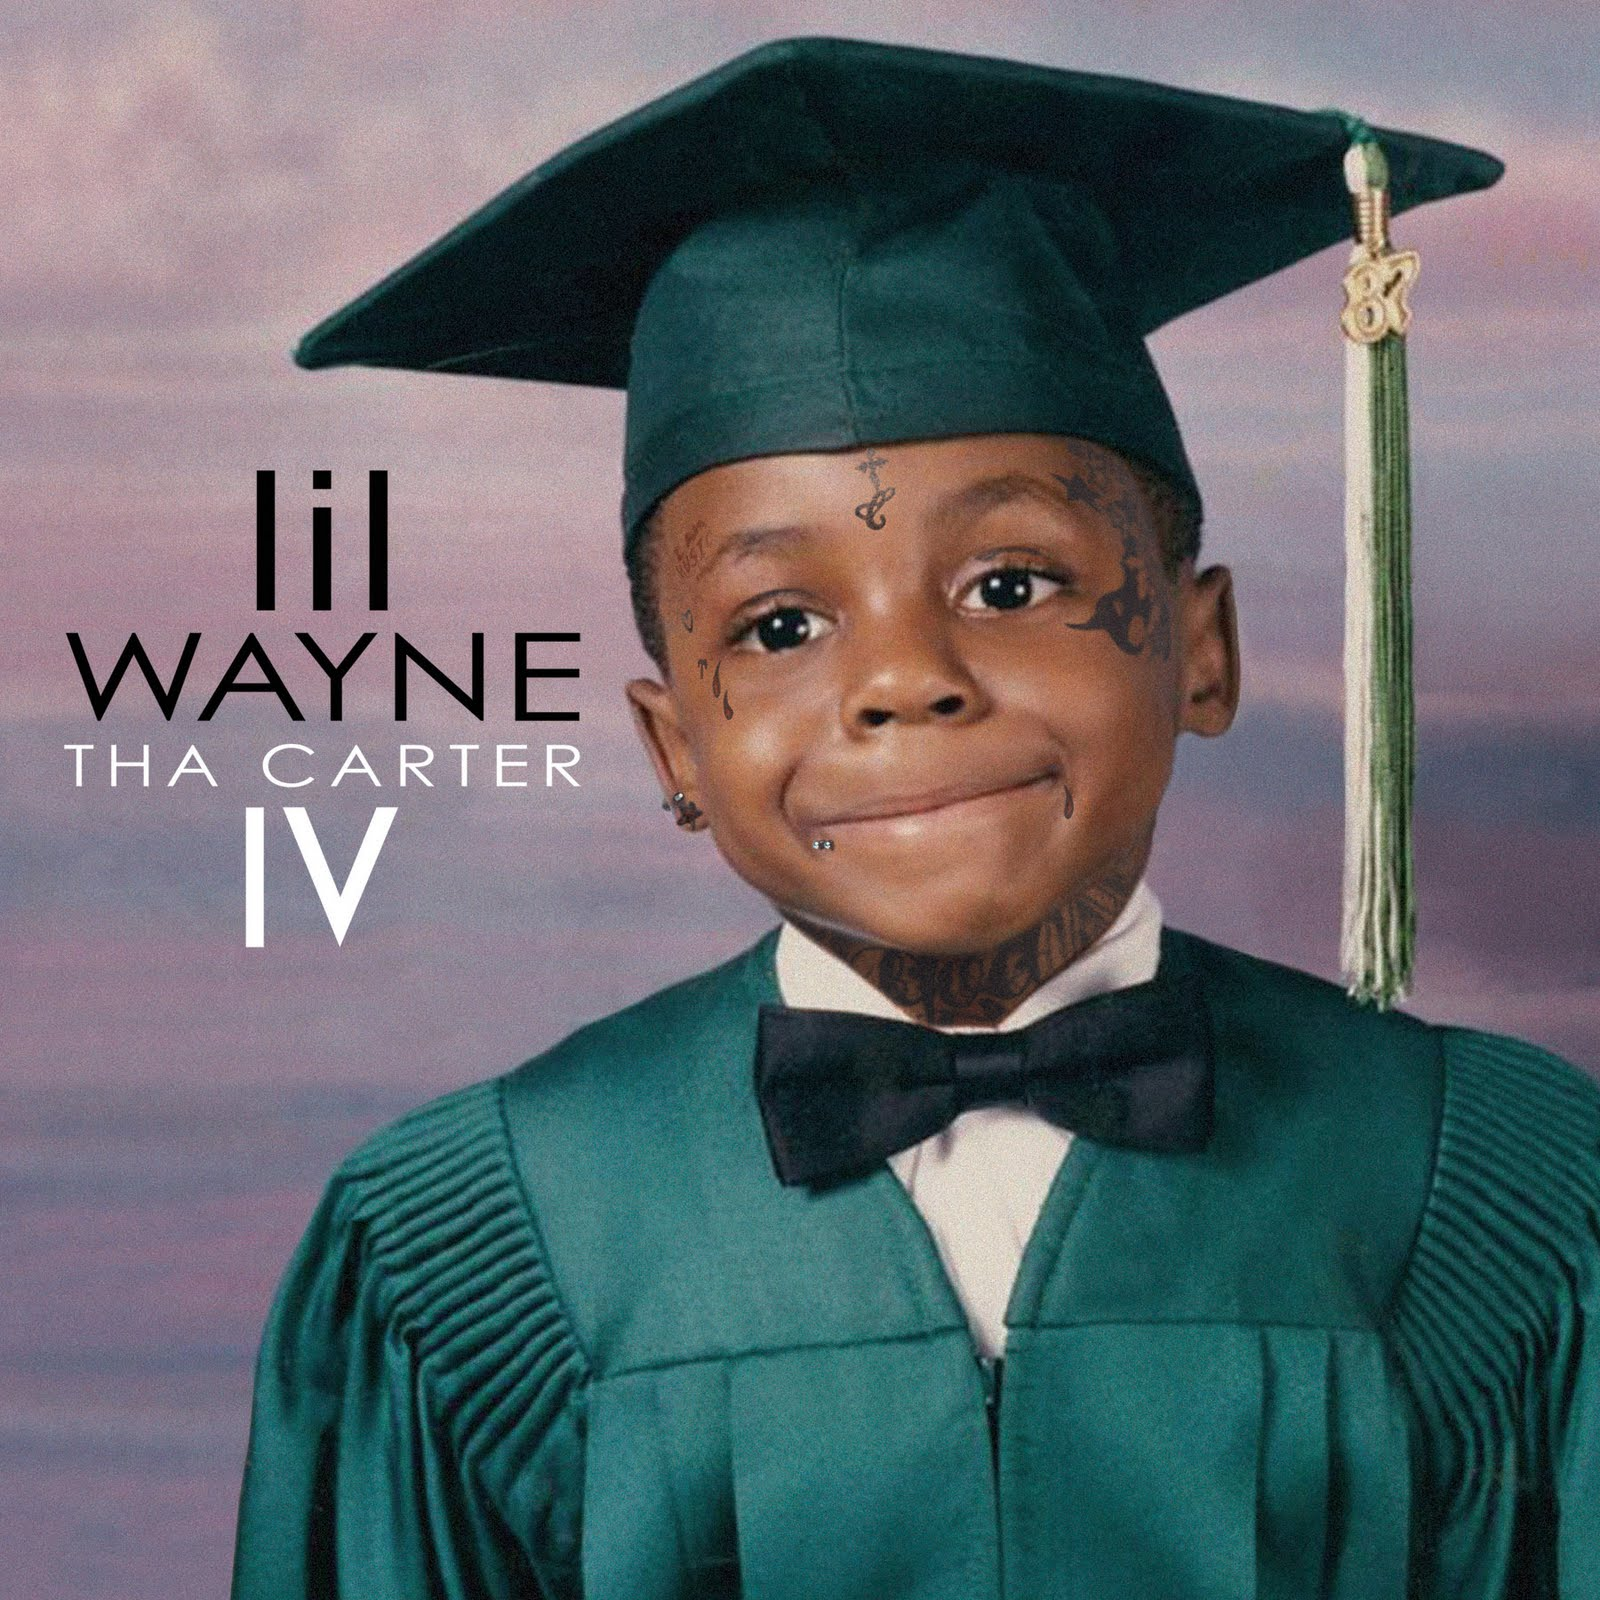 Lil wayne how to love lyrics top liryc